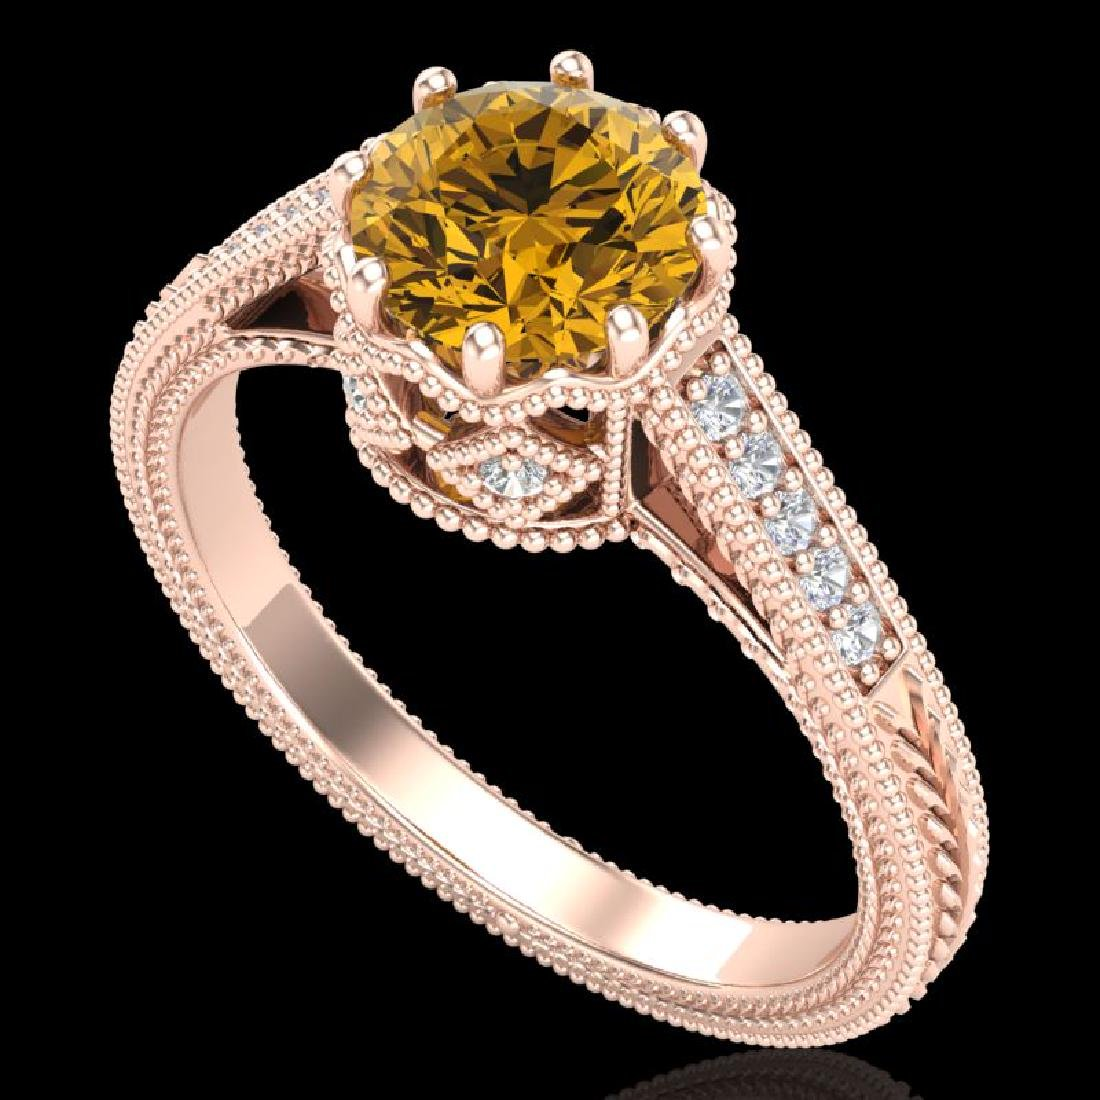 1.25 CTW Intense Fancy Yellow Diamond Engagement Art